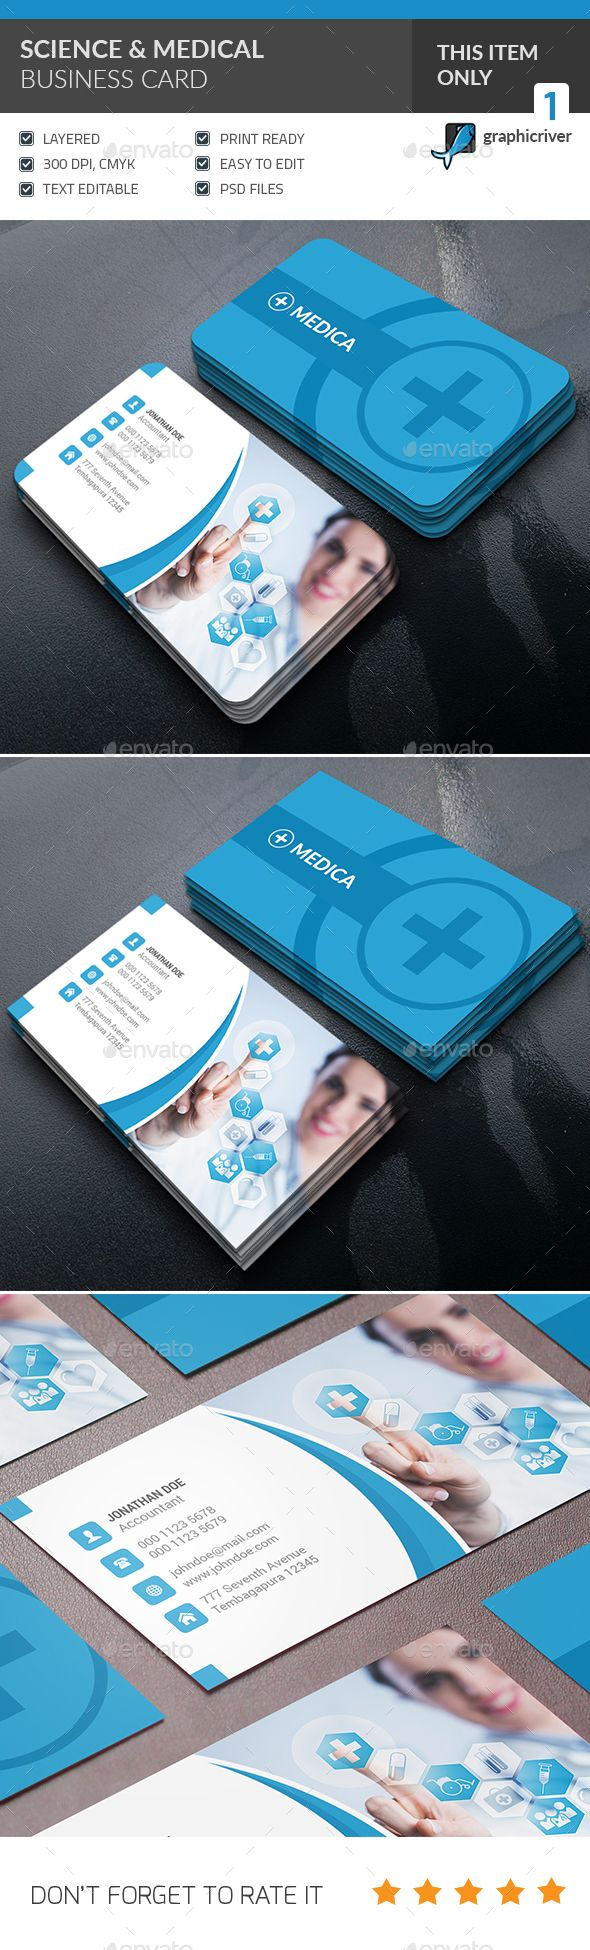 medical scientist business card more business cards and business ideas. Black Bedroom Furniture Sets. Home Design Ideas